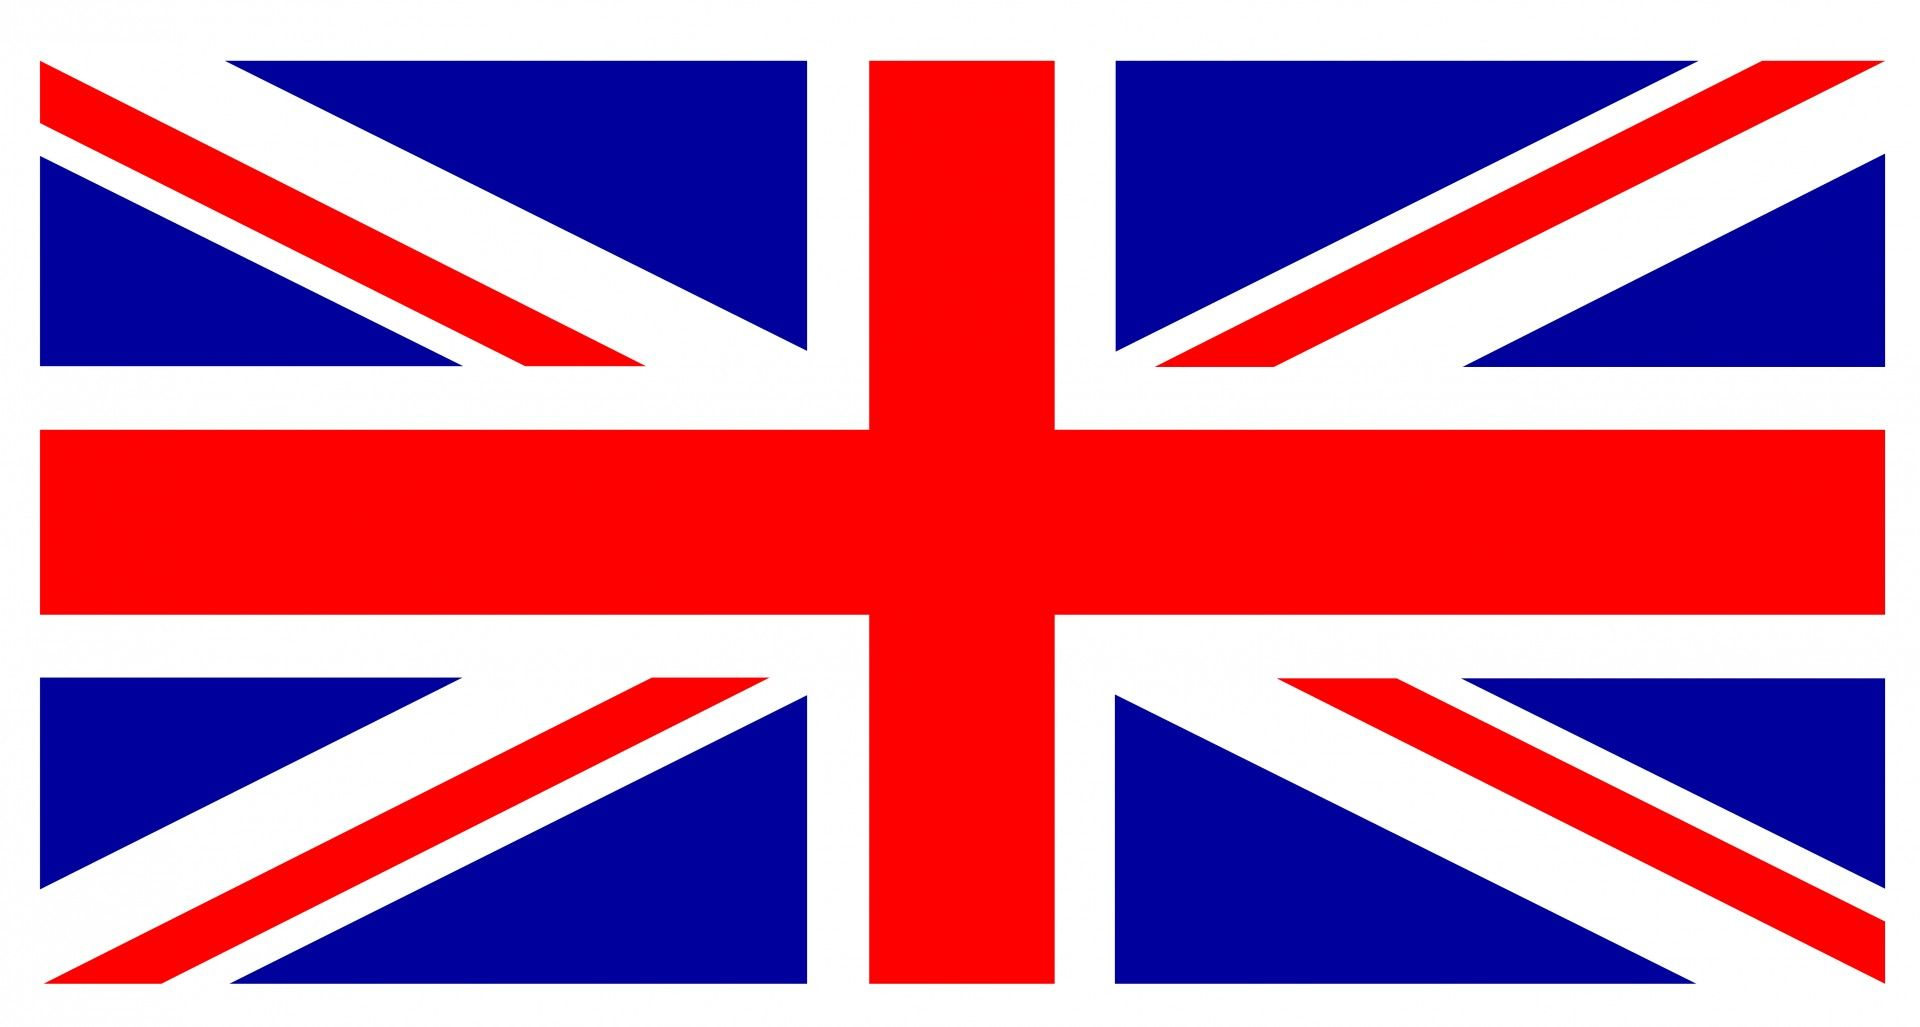 Get your International Flags at A1 Flags & Poles!!! | Flags | Pinterest